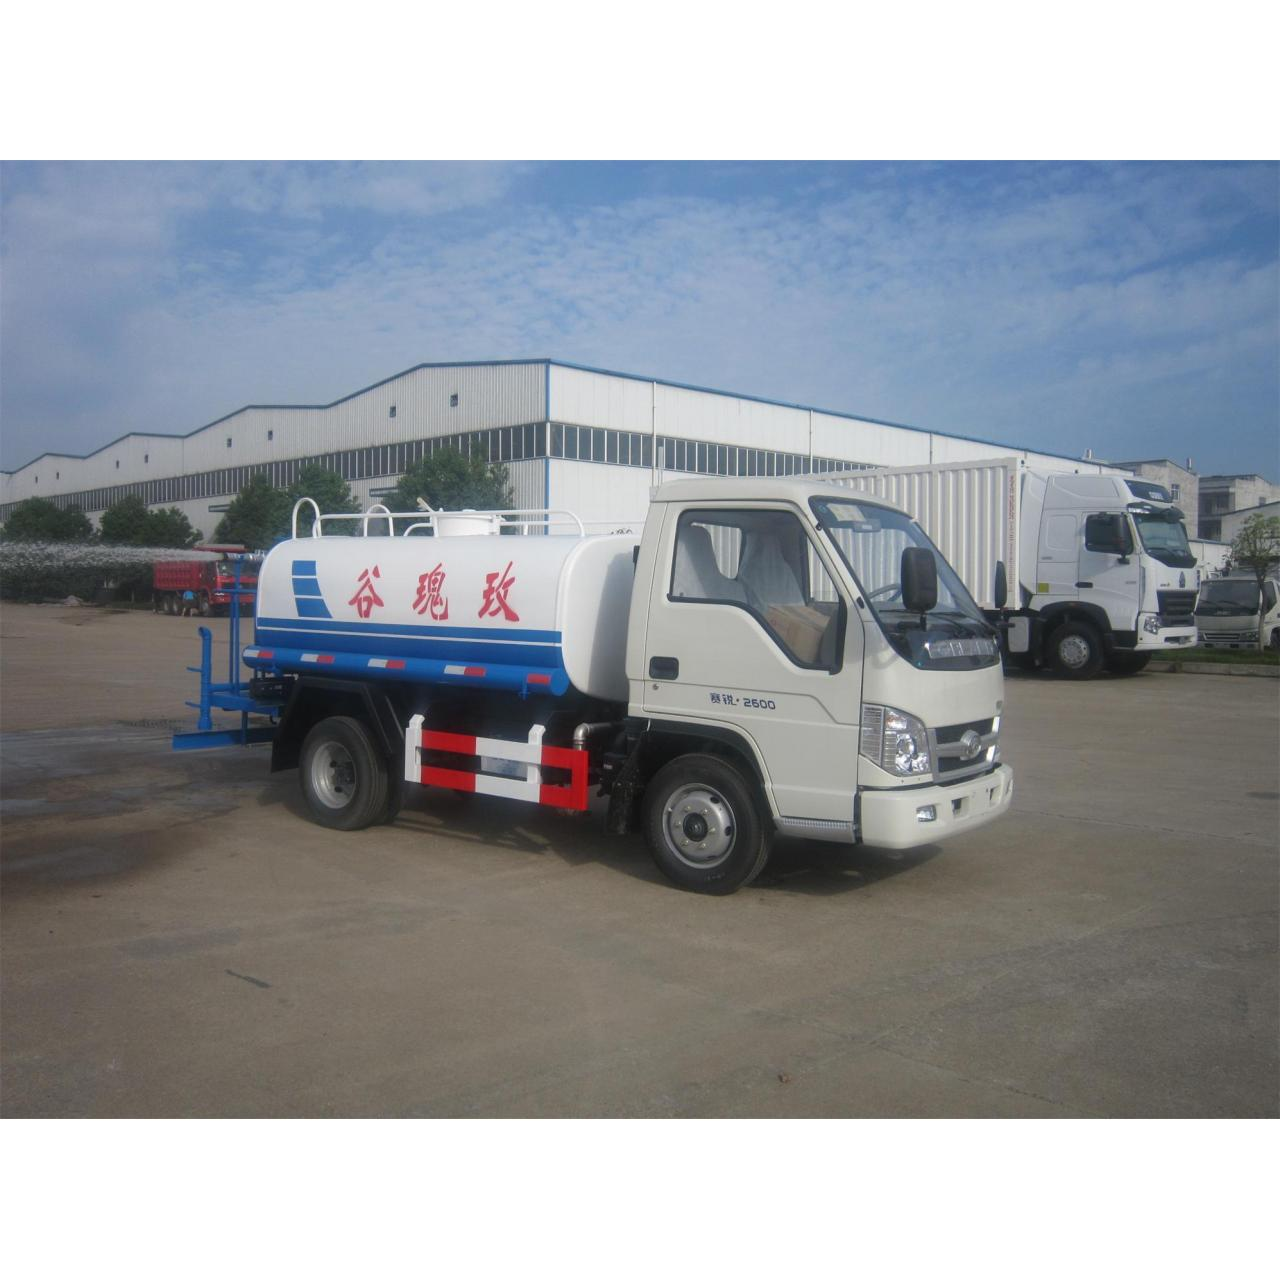 Buy cheap watertruck Foton small water tank truck 1-3cbm from wholesalers